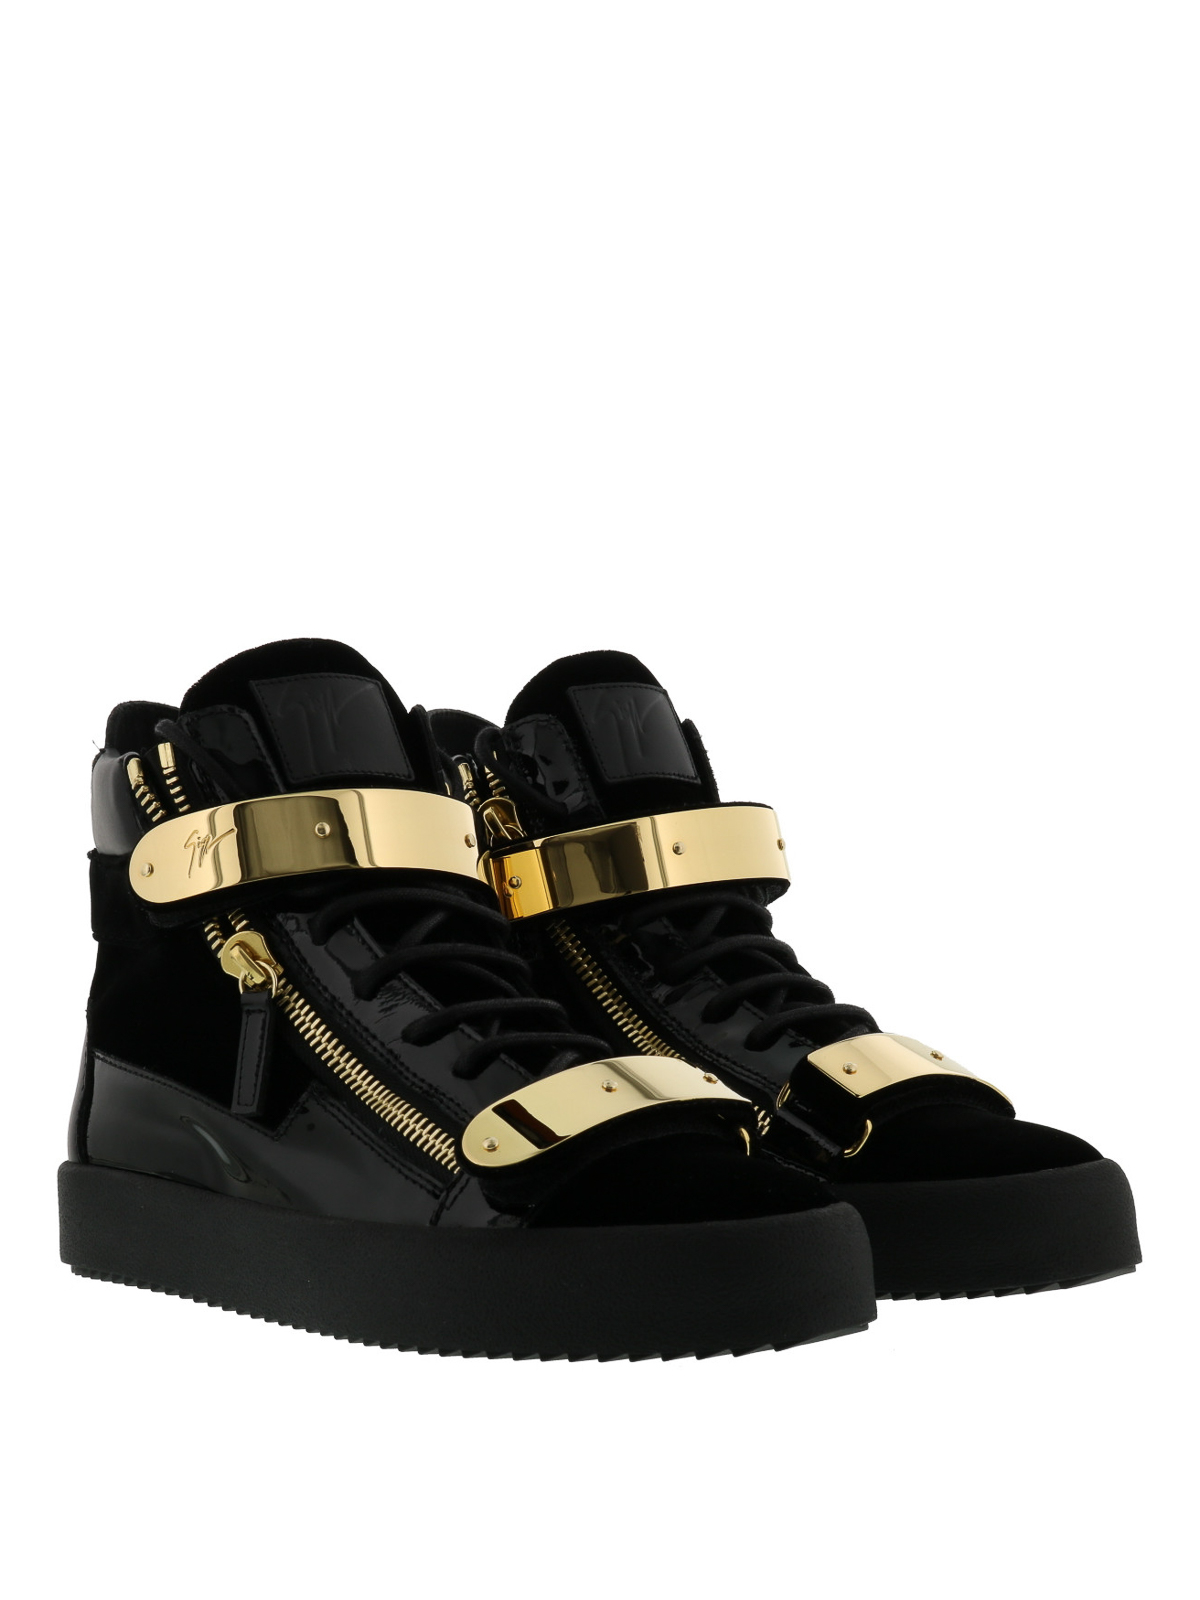 0f0d71c436a0f Giuseppe Zanotti Female Shoes Names Shoes Loafers | Tenders Portal